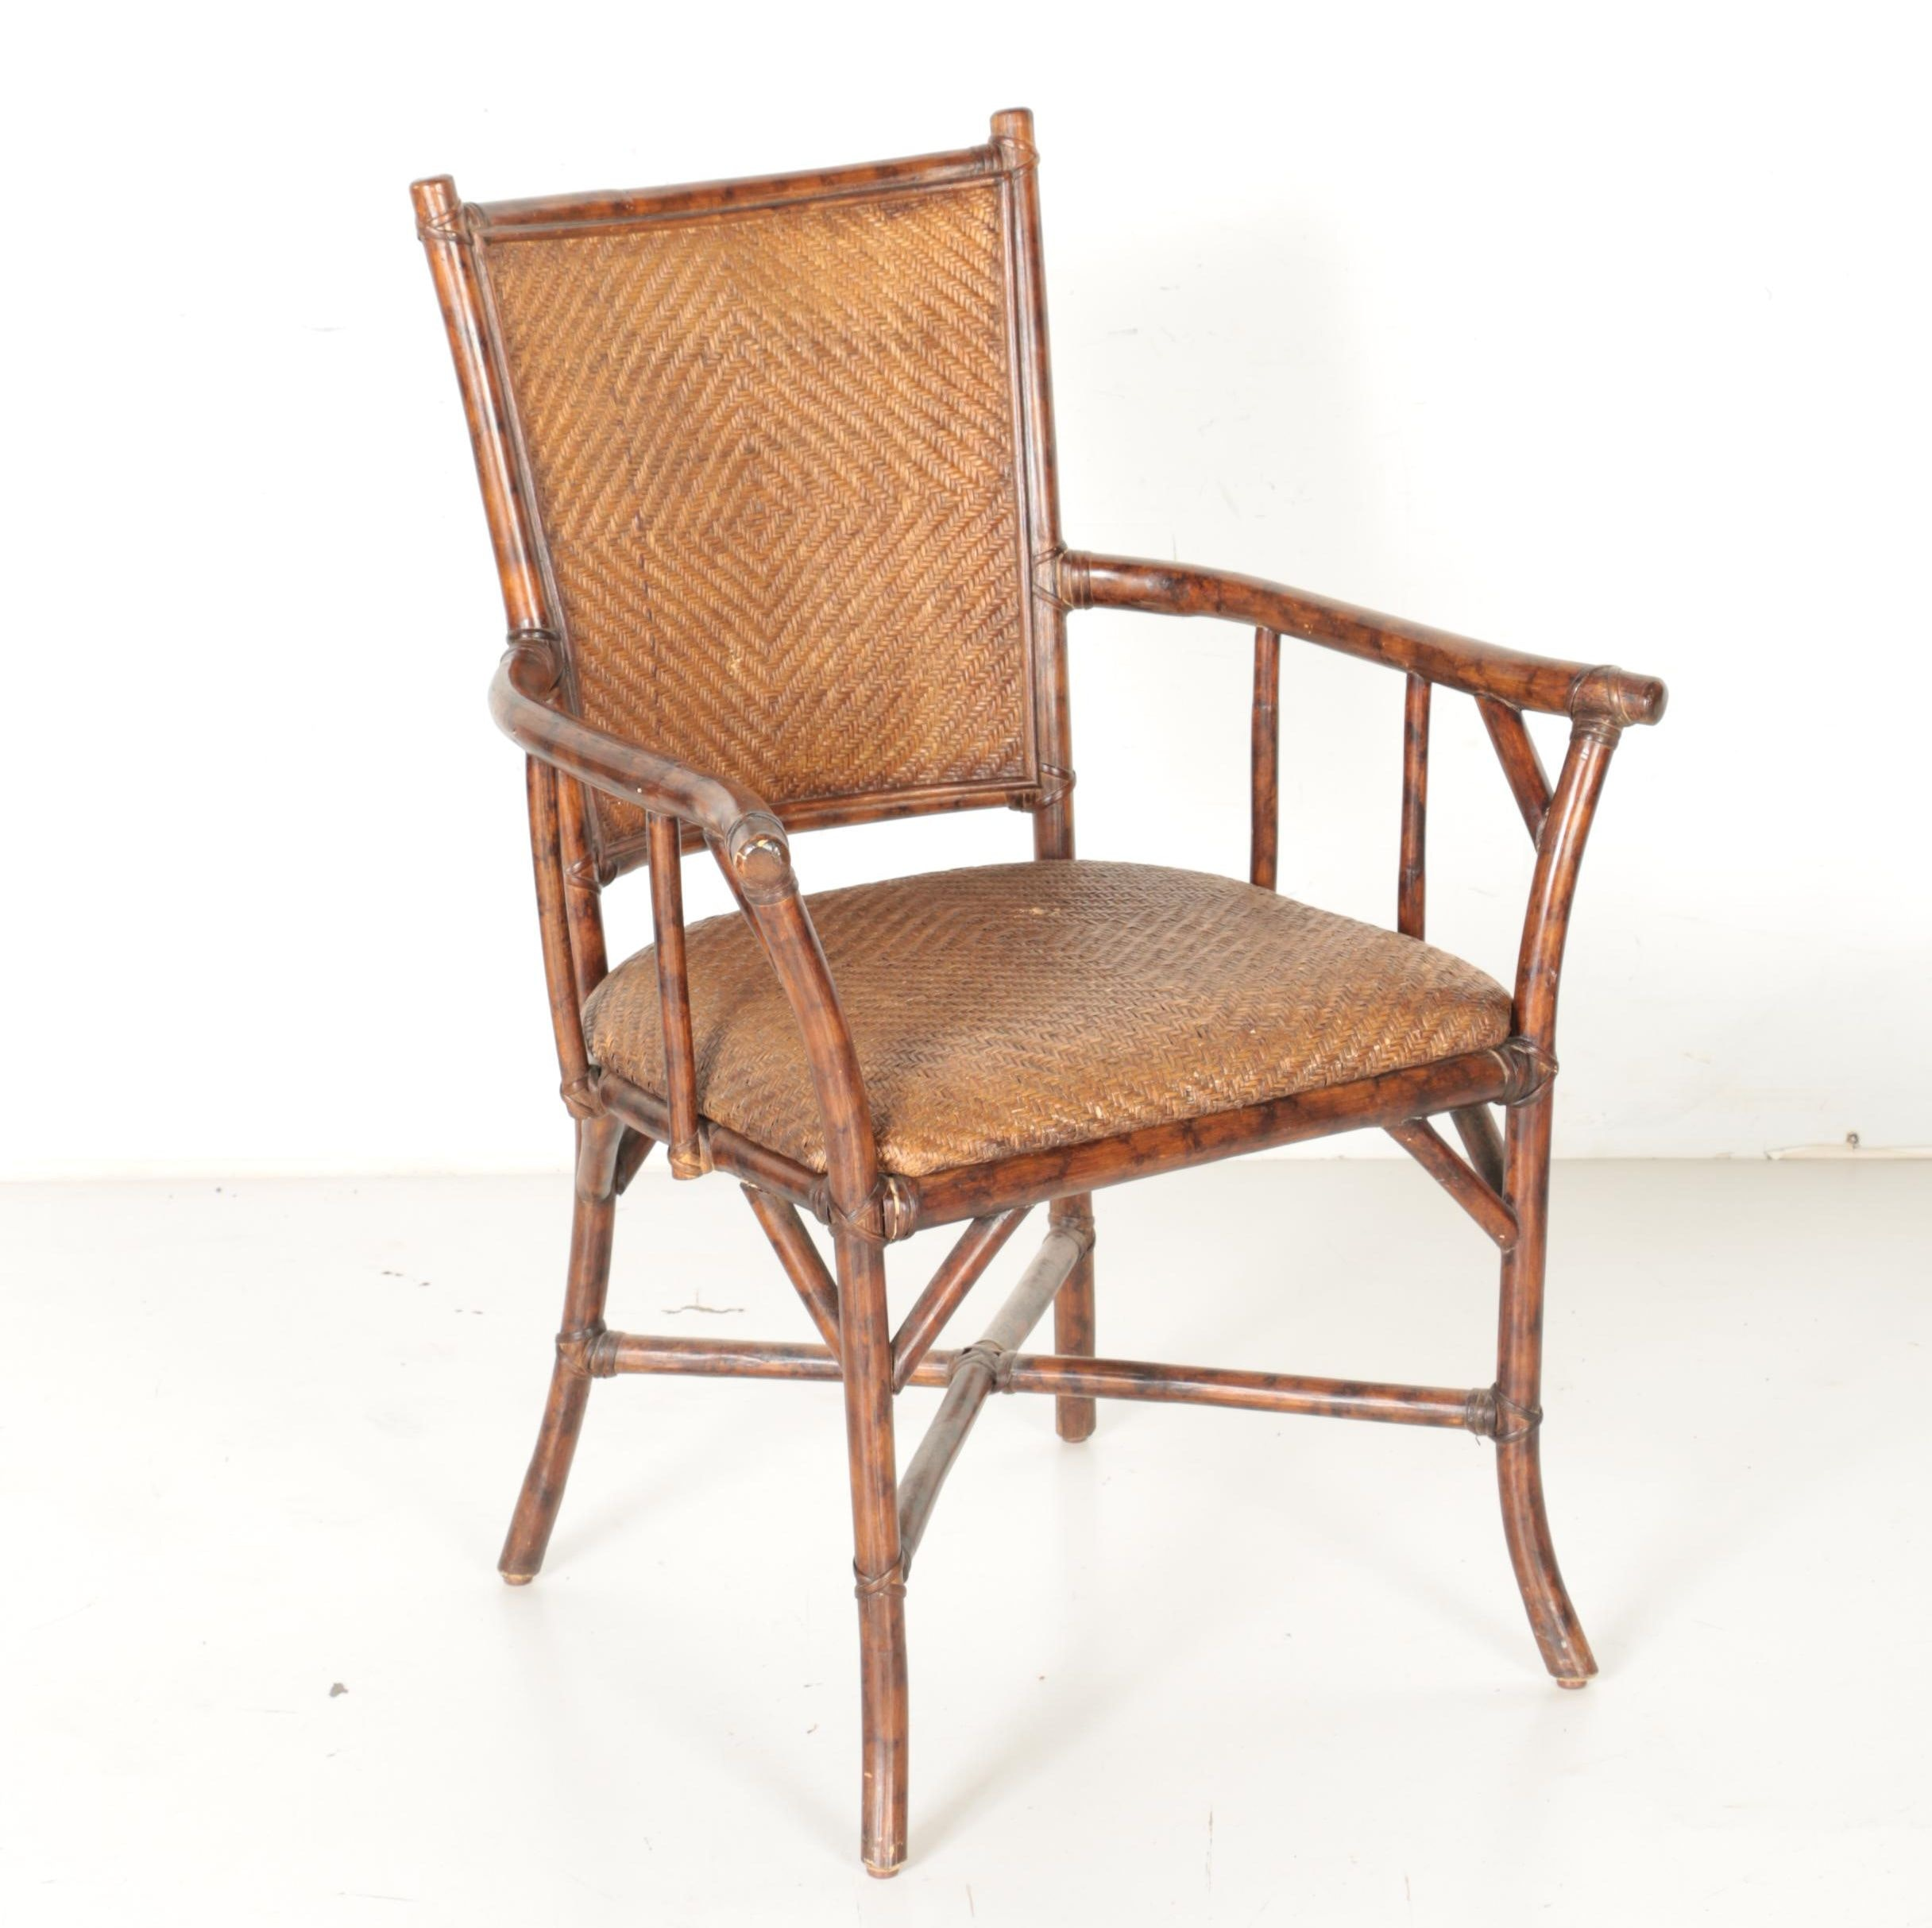 Rattan Armchair By Pier 1 Imports ...